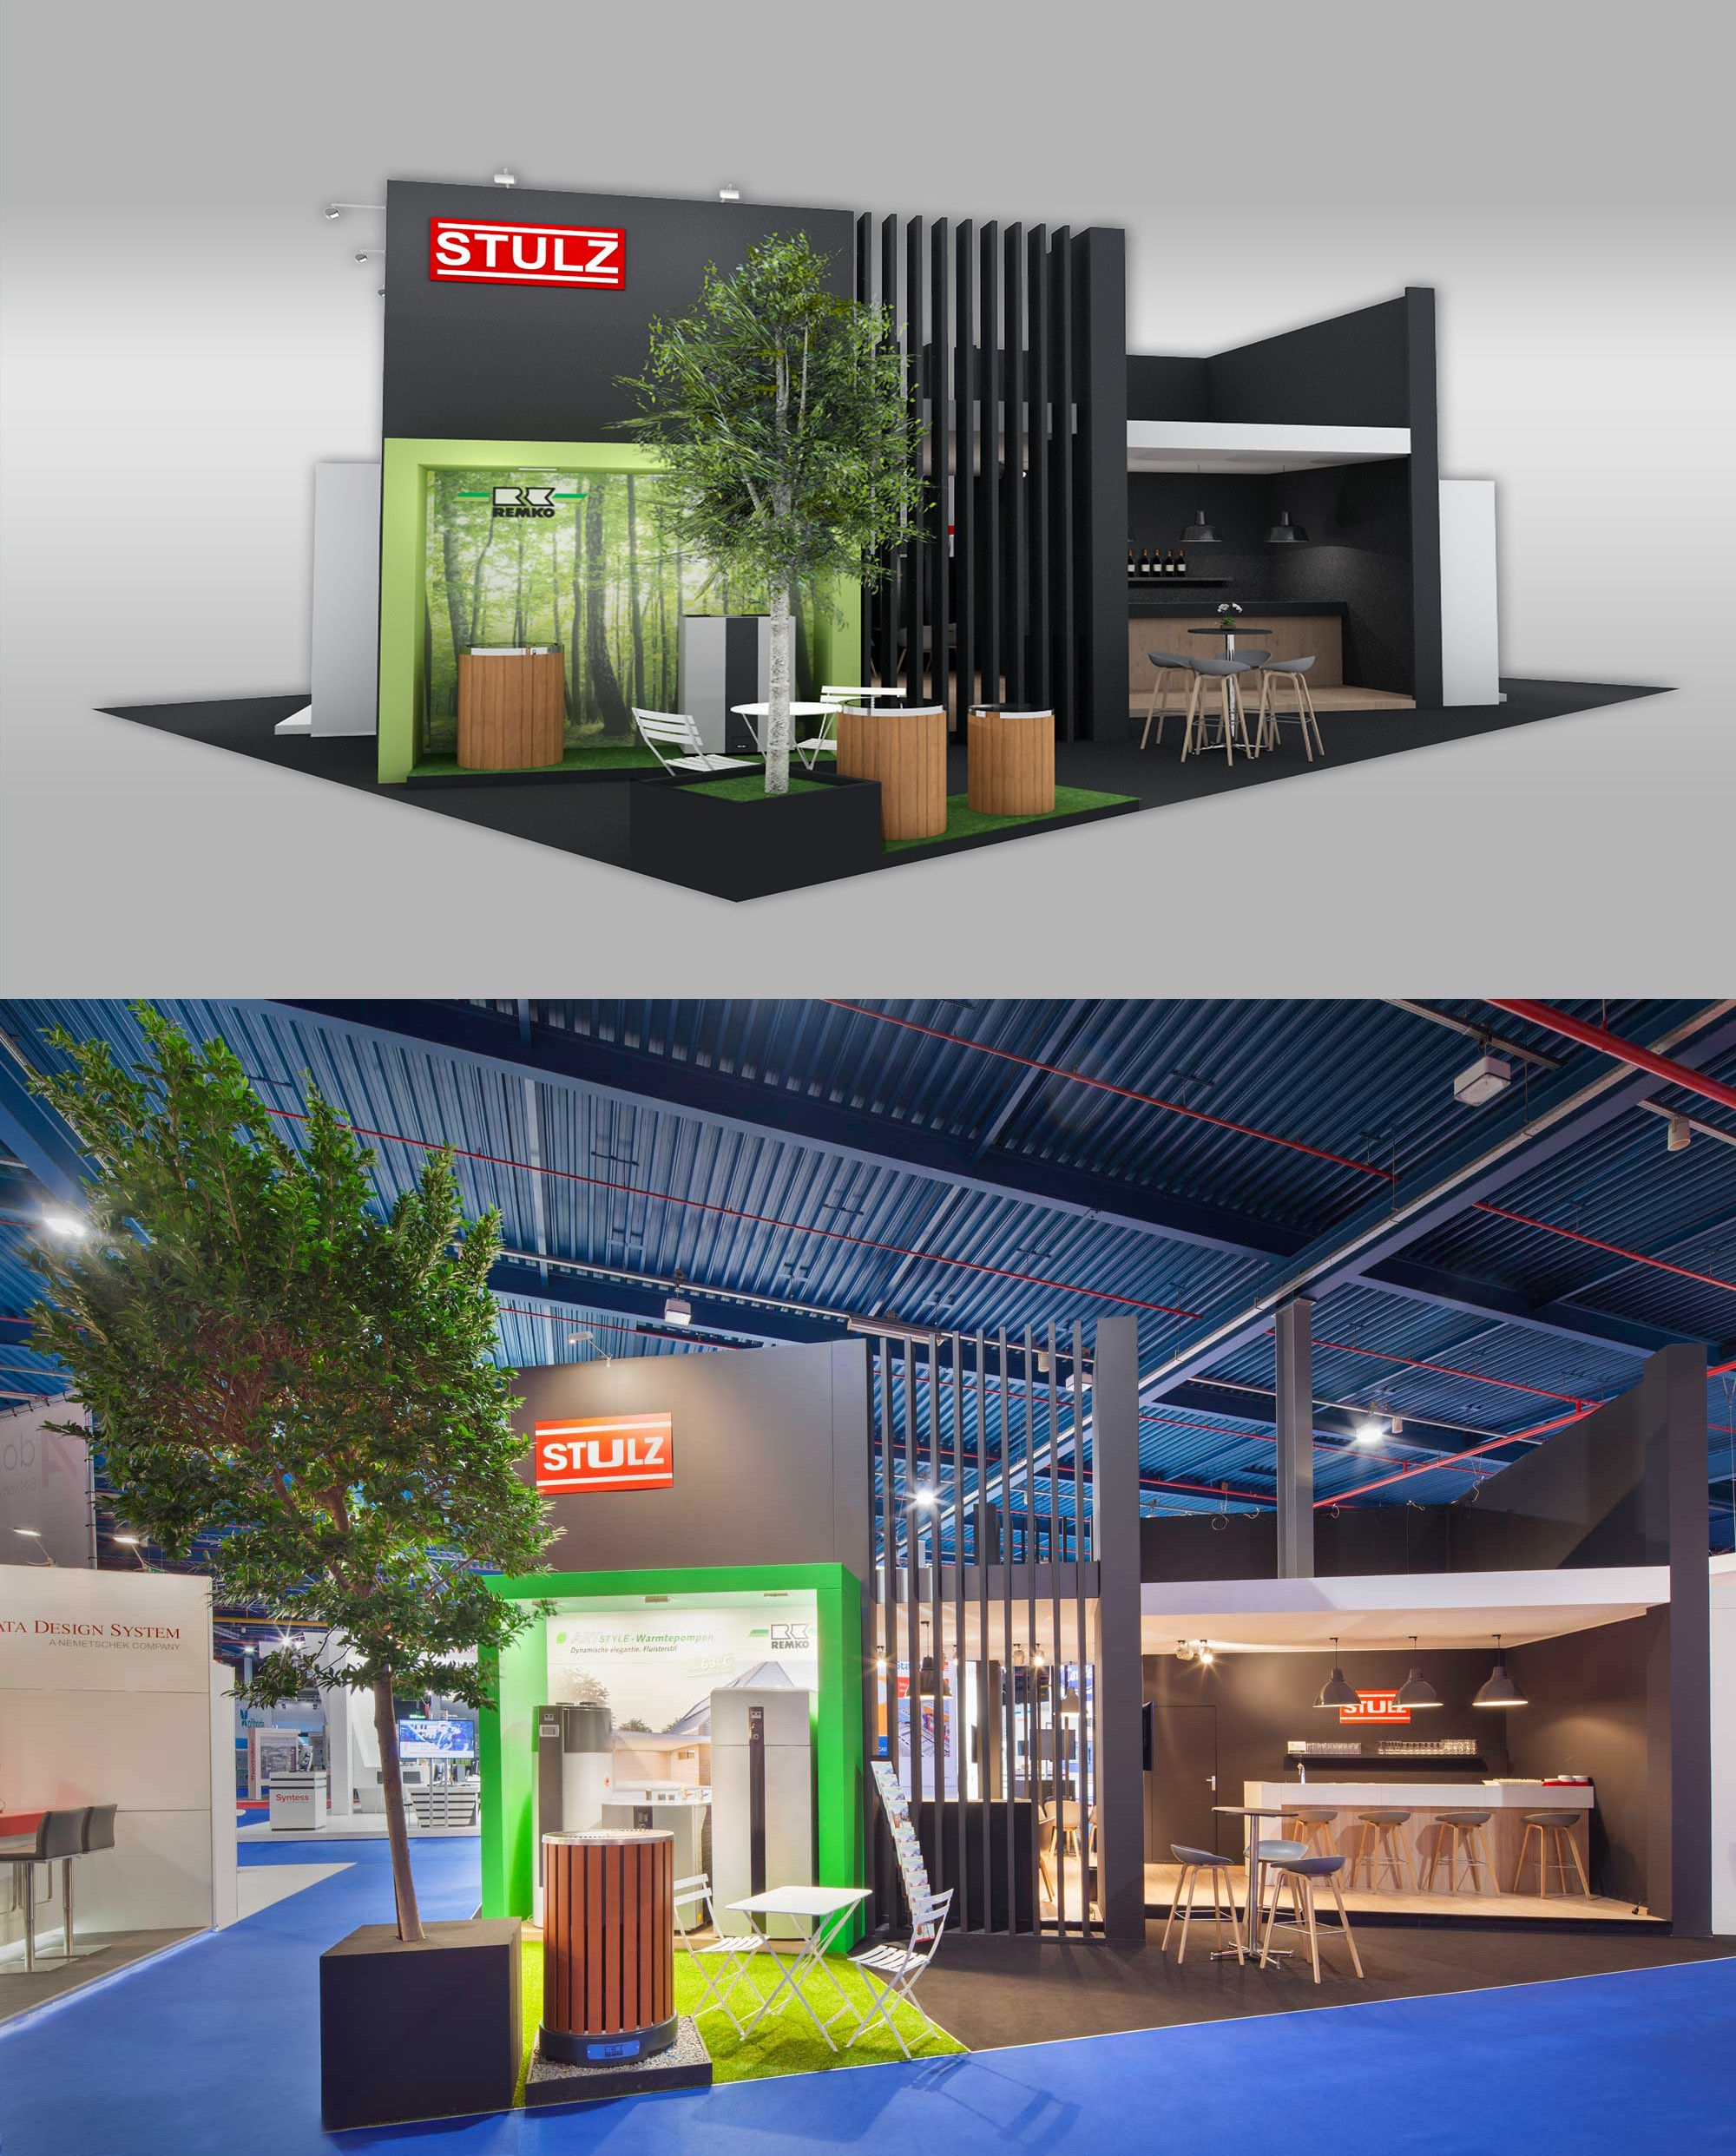 Exhibition Stand Installation : Exhibition stand design from the inside building at